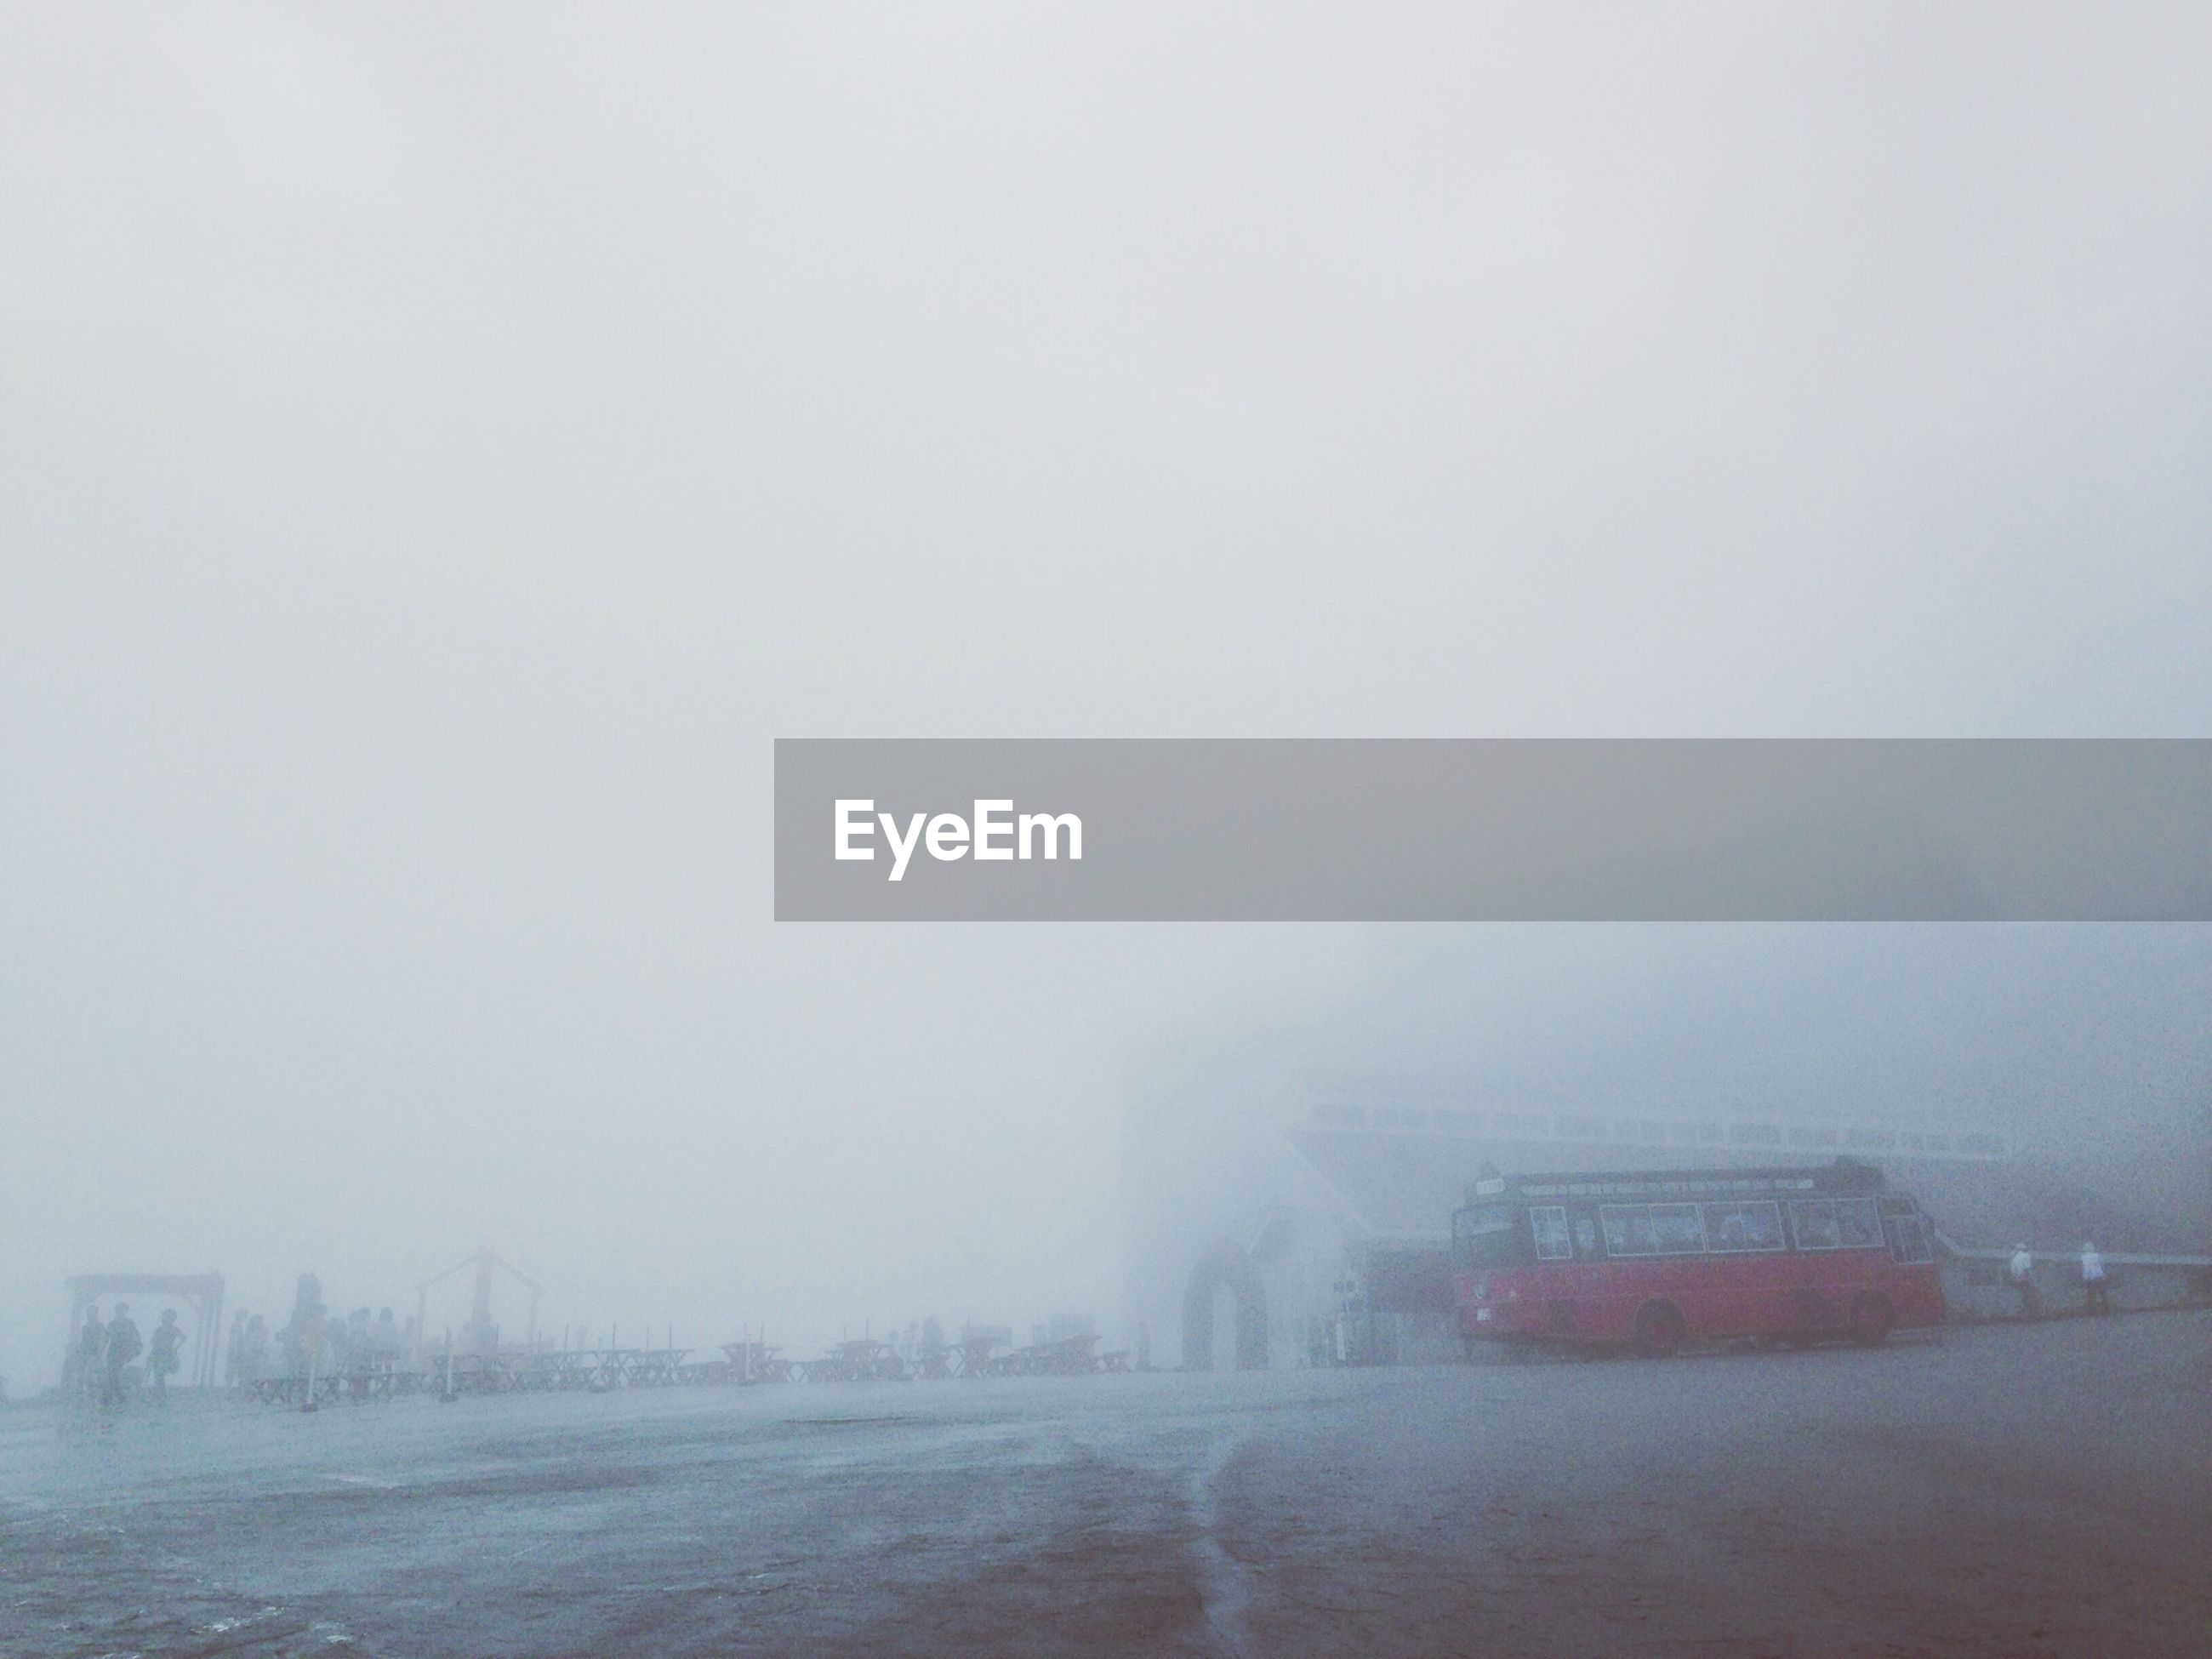 Bus on street during foggy weather